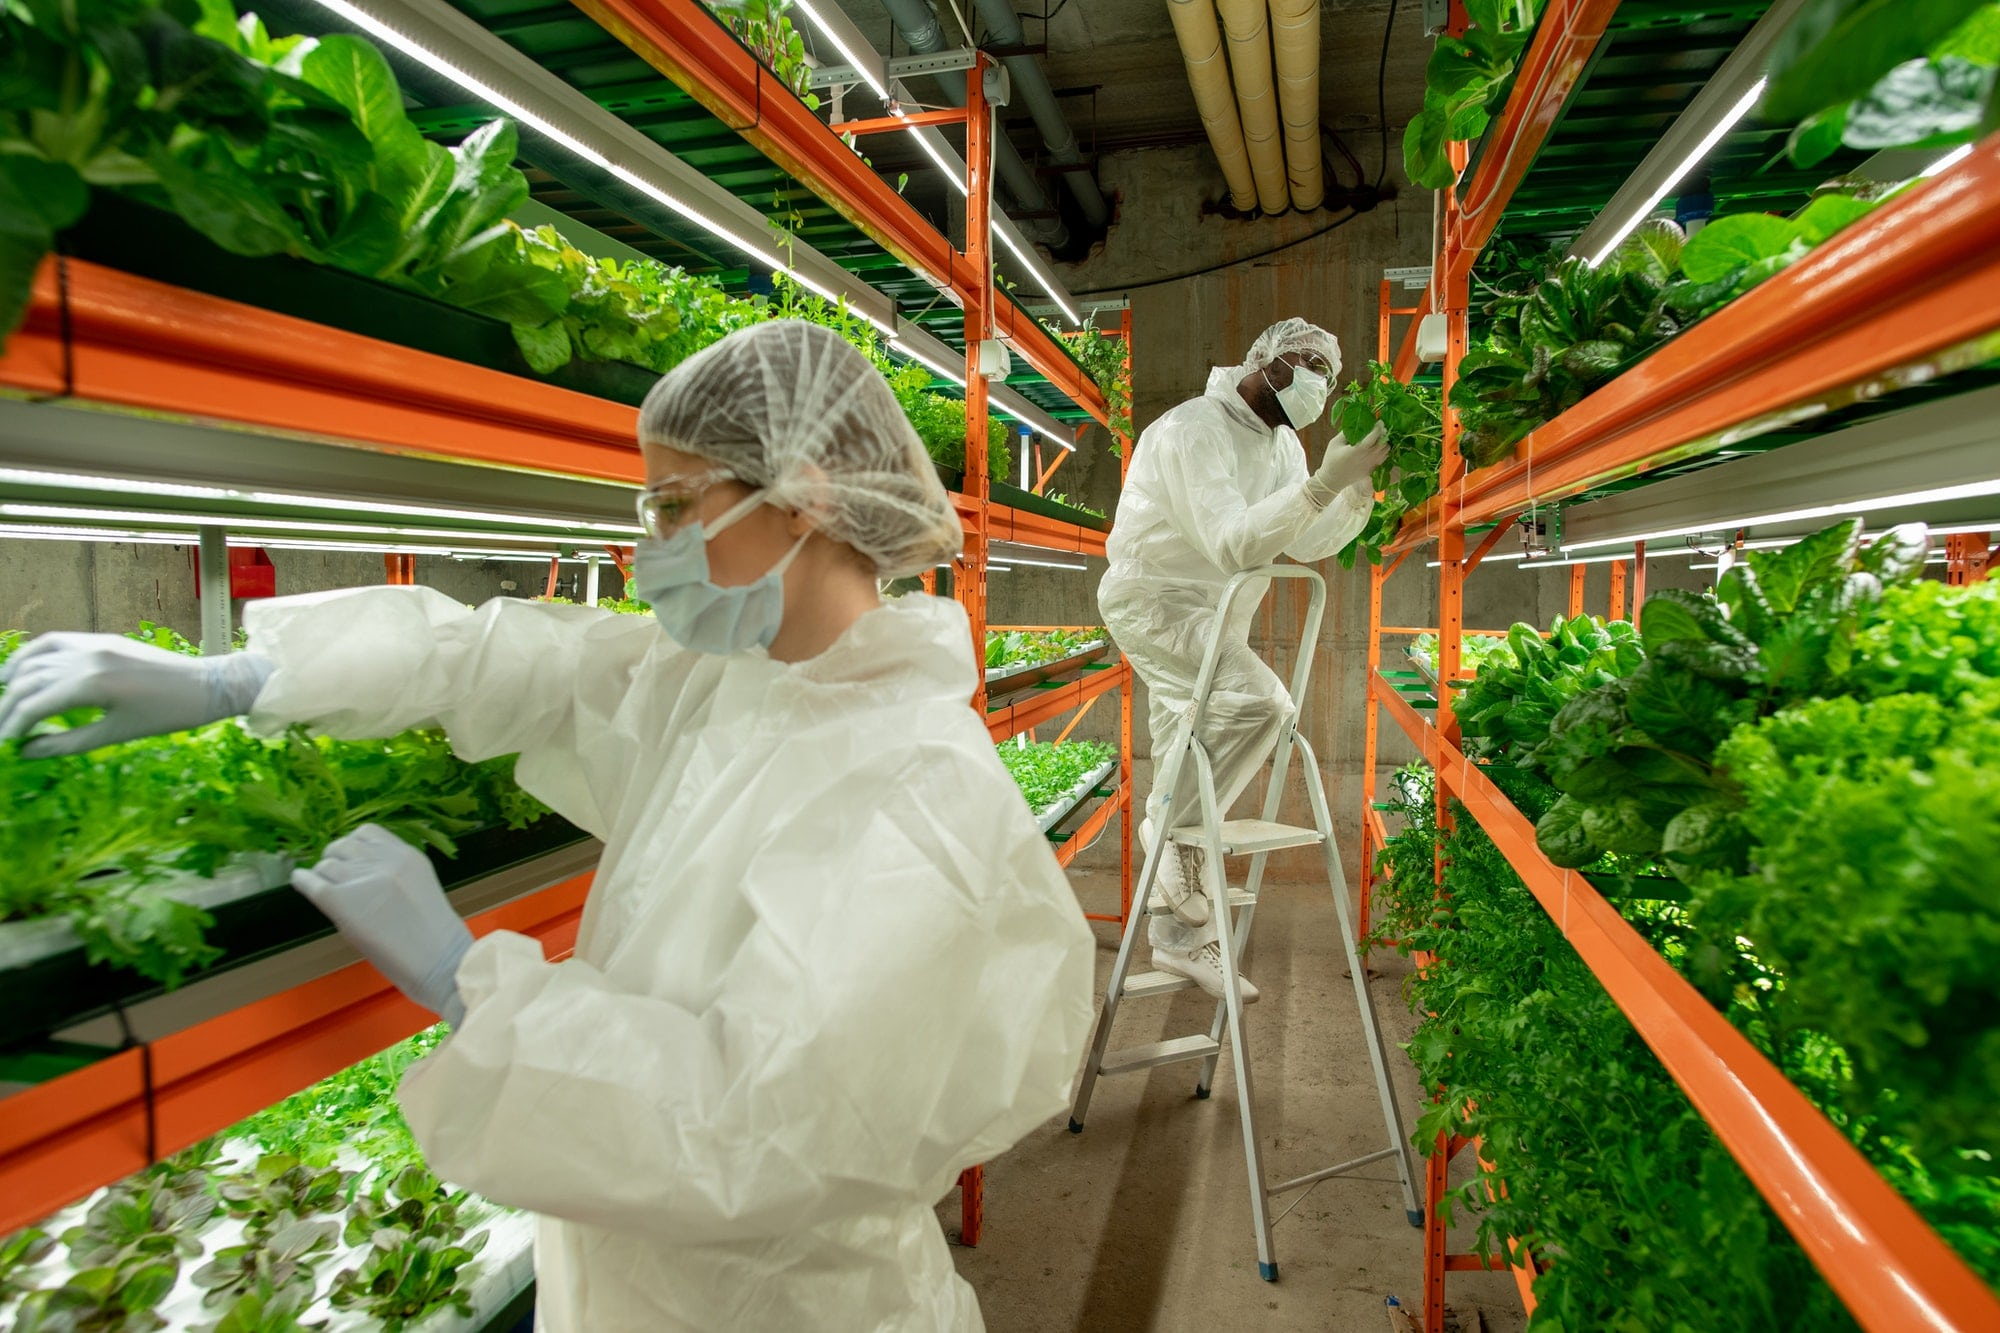 workers of vertical farm examining leaves of lettuce